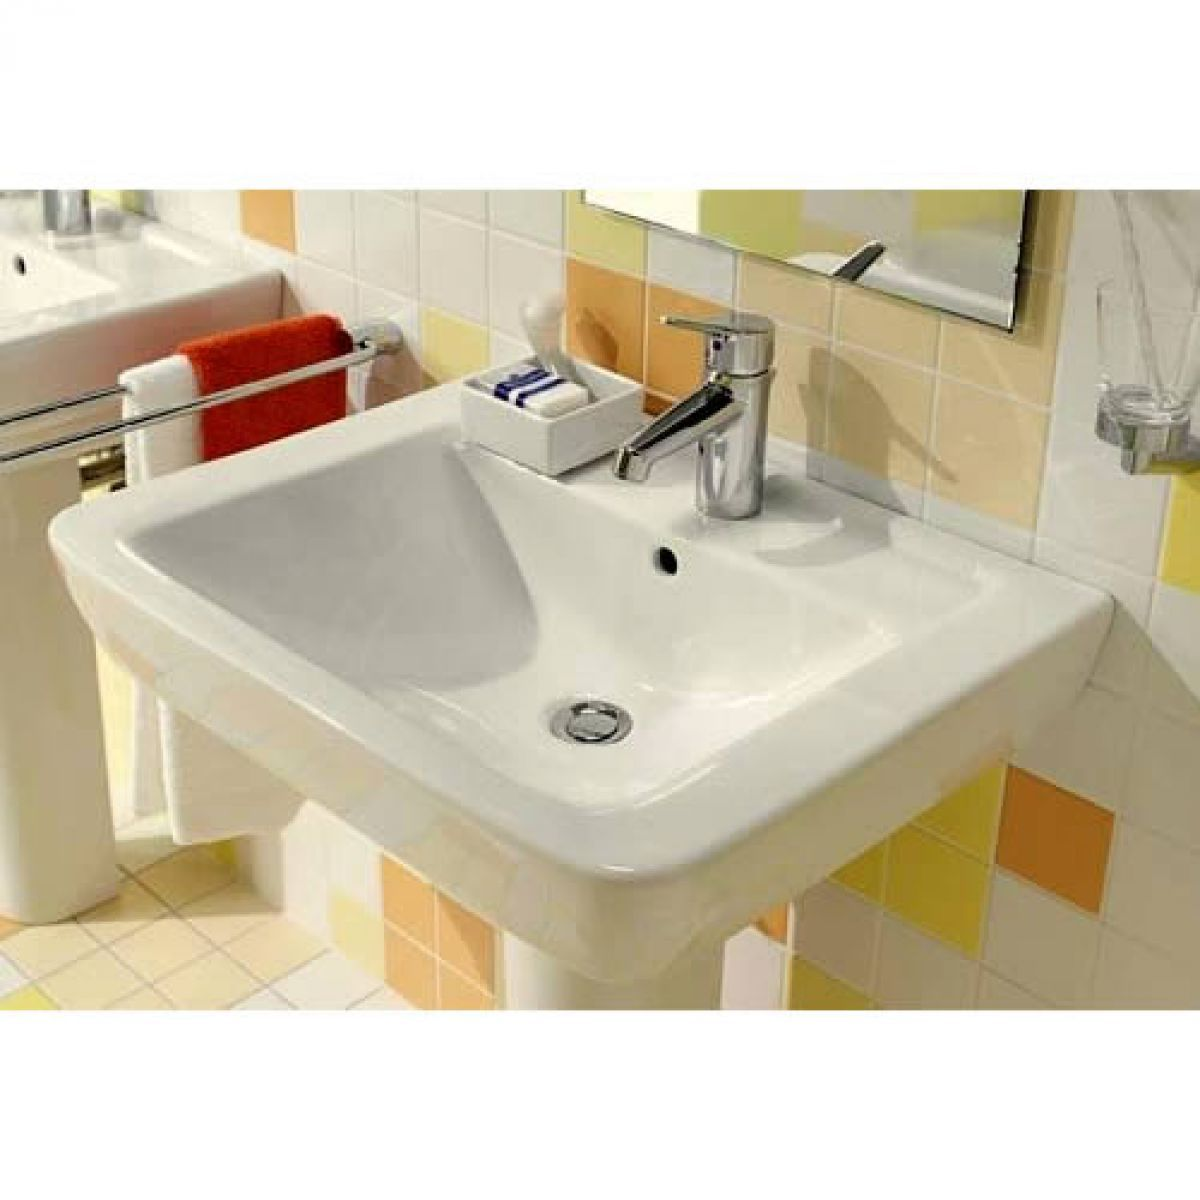 villeroy boch subway washbasin uk bathrooms. Black Bedroom Furniture Sets. Home Design Ideas